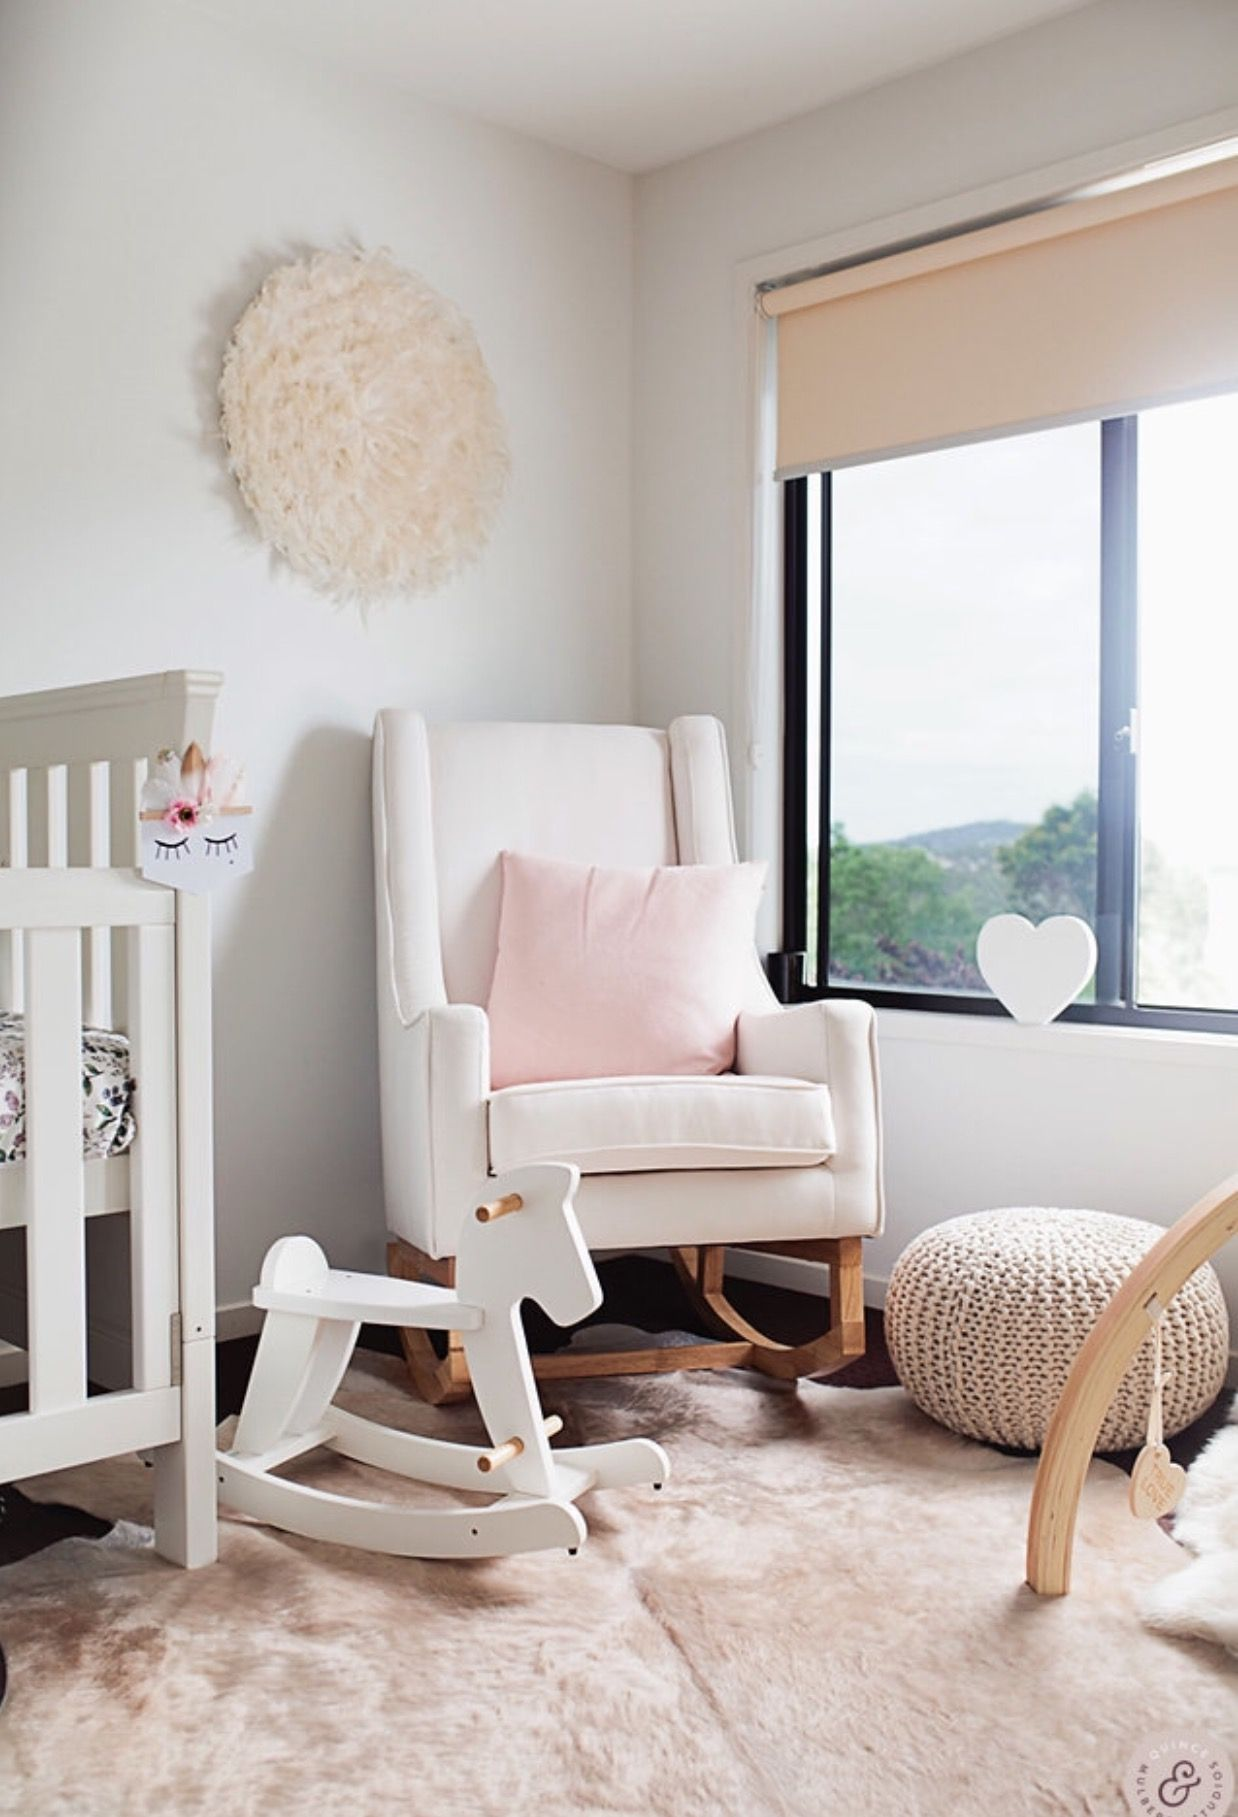 Our London rocking chair in bone/natural hobbeaustralia